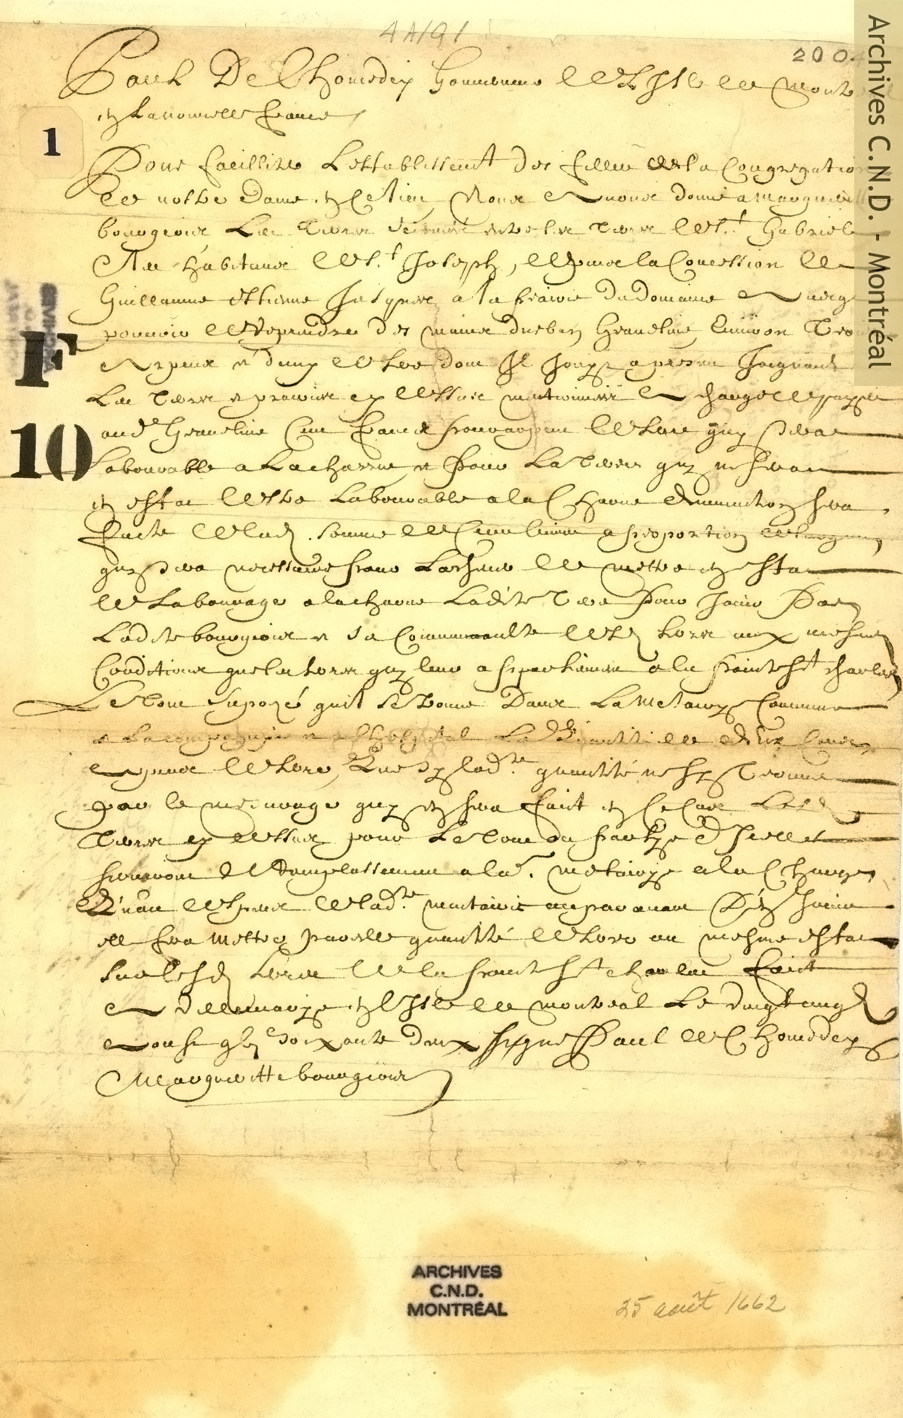 Notarized copy of the contract of purchase for a plot of land on the Saint-Gabriel prairie signed on August 25, 1662 by Paul de Chomedey de Maisonneuve and Marguerite Bourgeoys